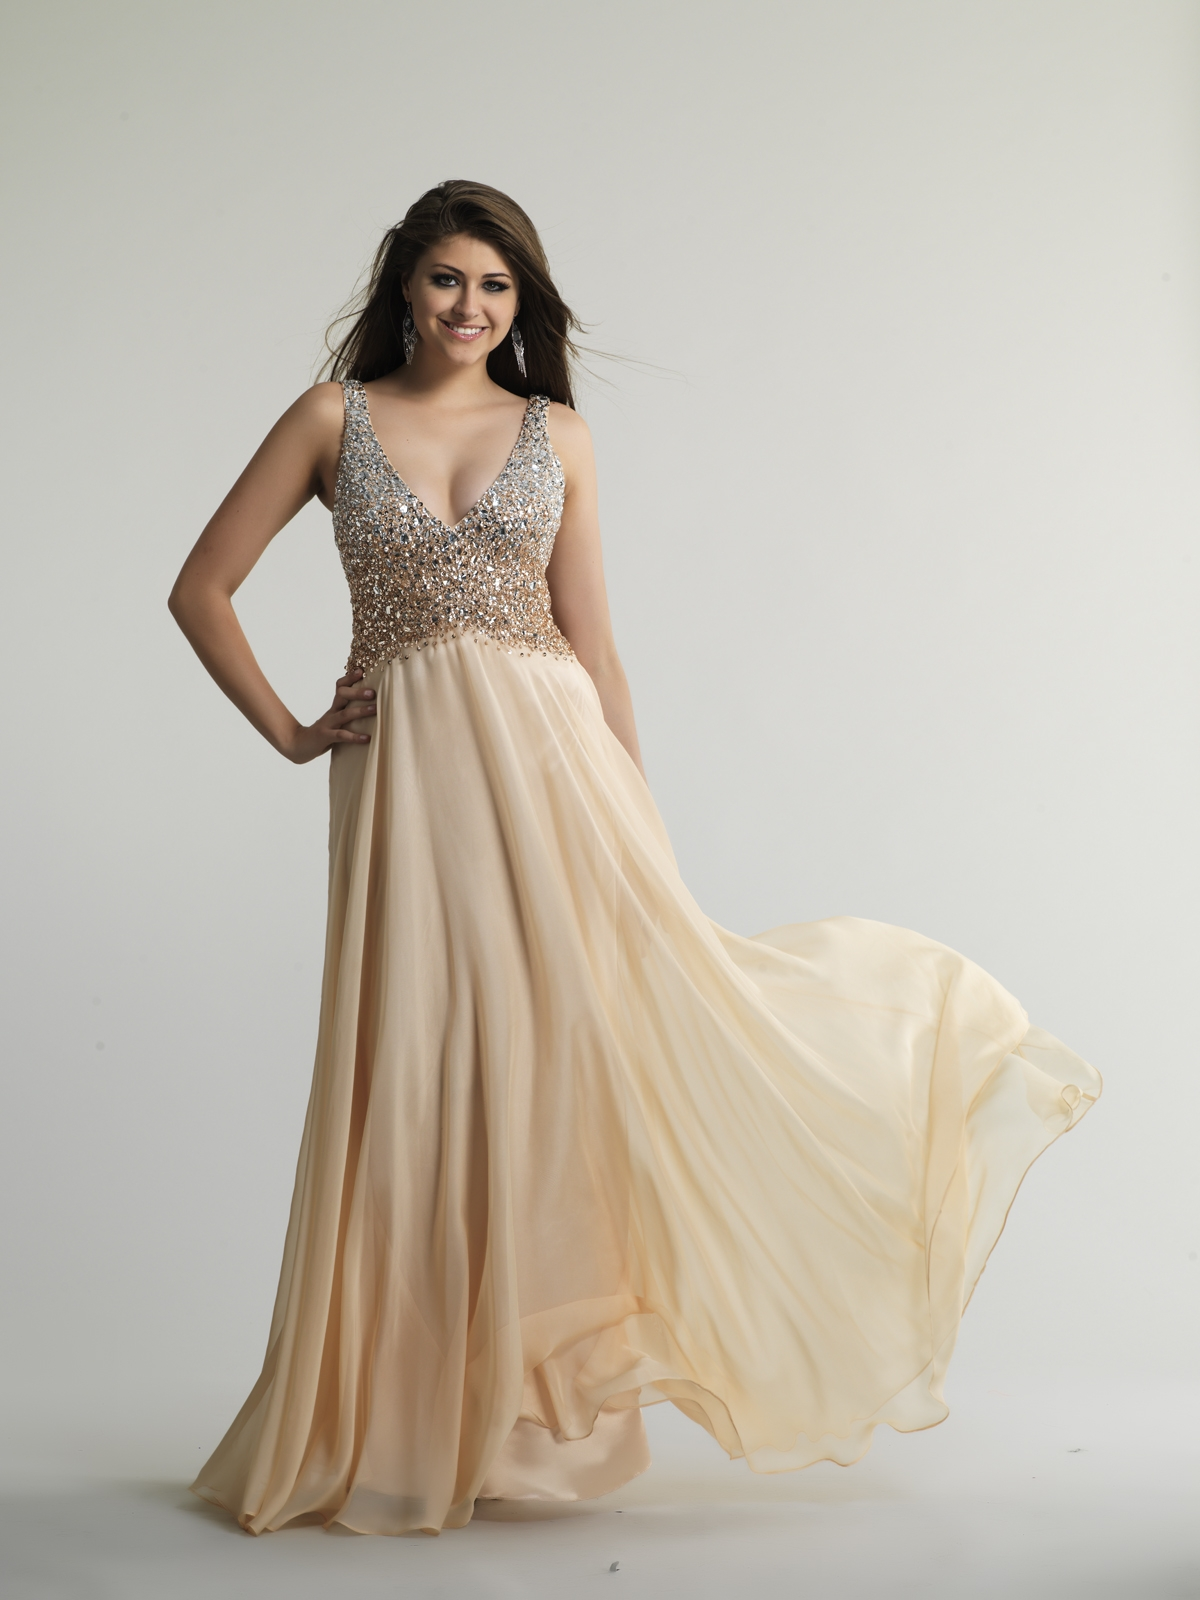 Wedding Champagne Colored Dresses champagne colored dresses dressed up girl color prom dresses